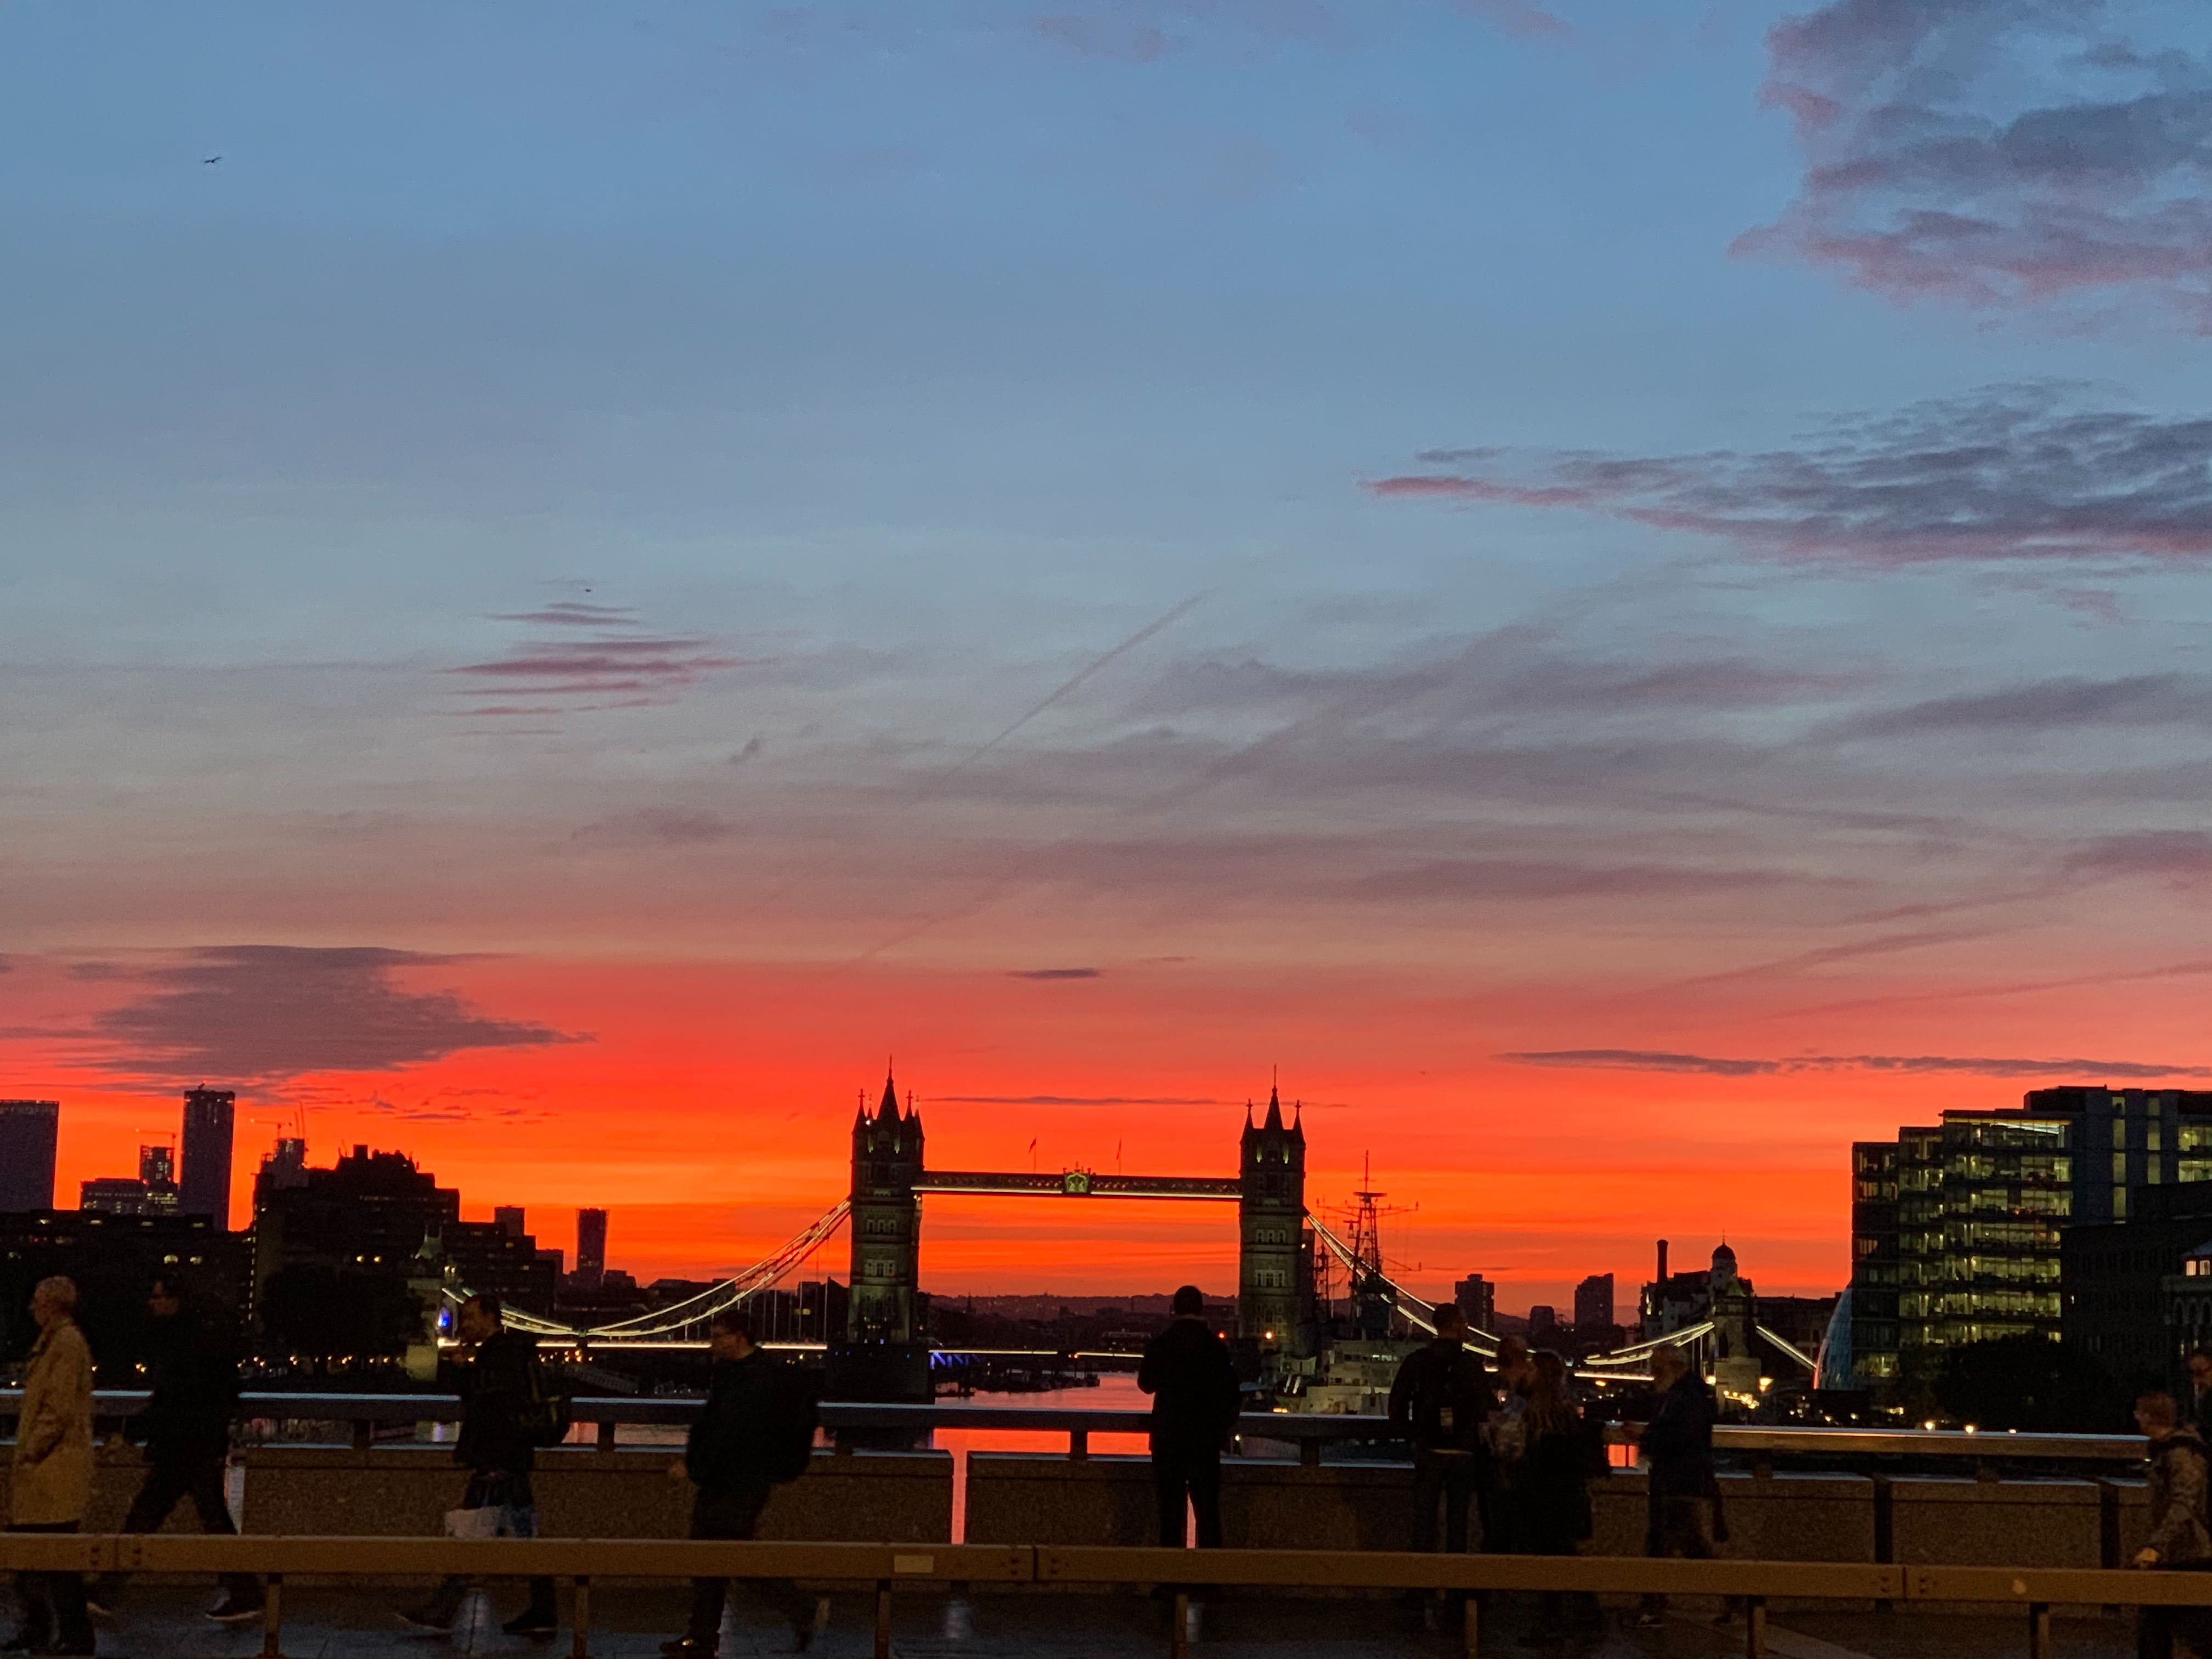 sifry_london_sunrise.jpg